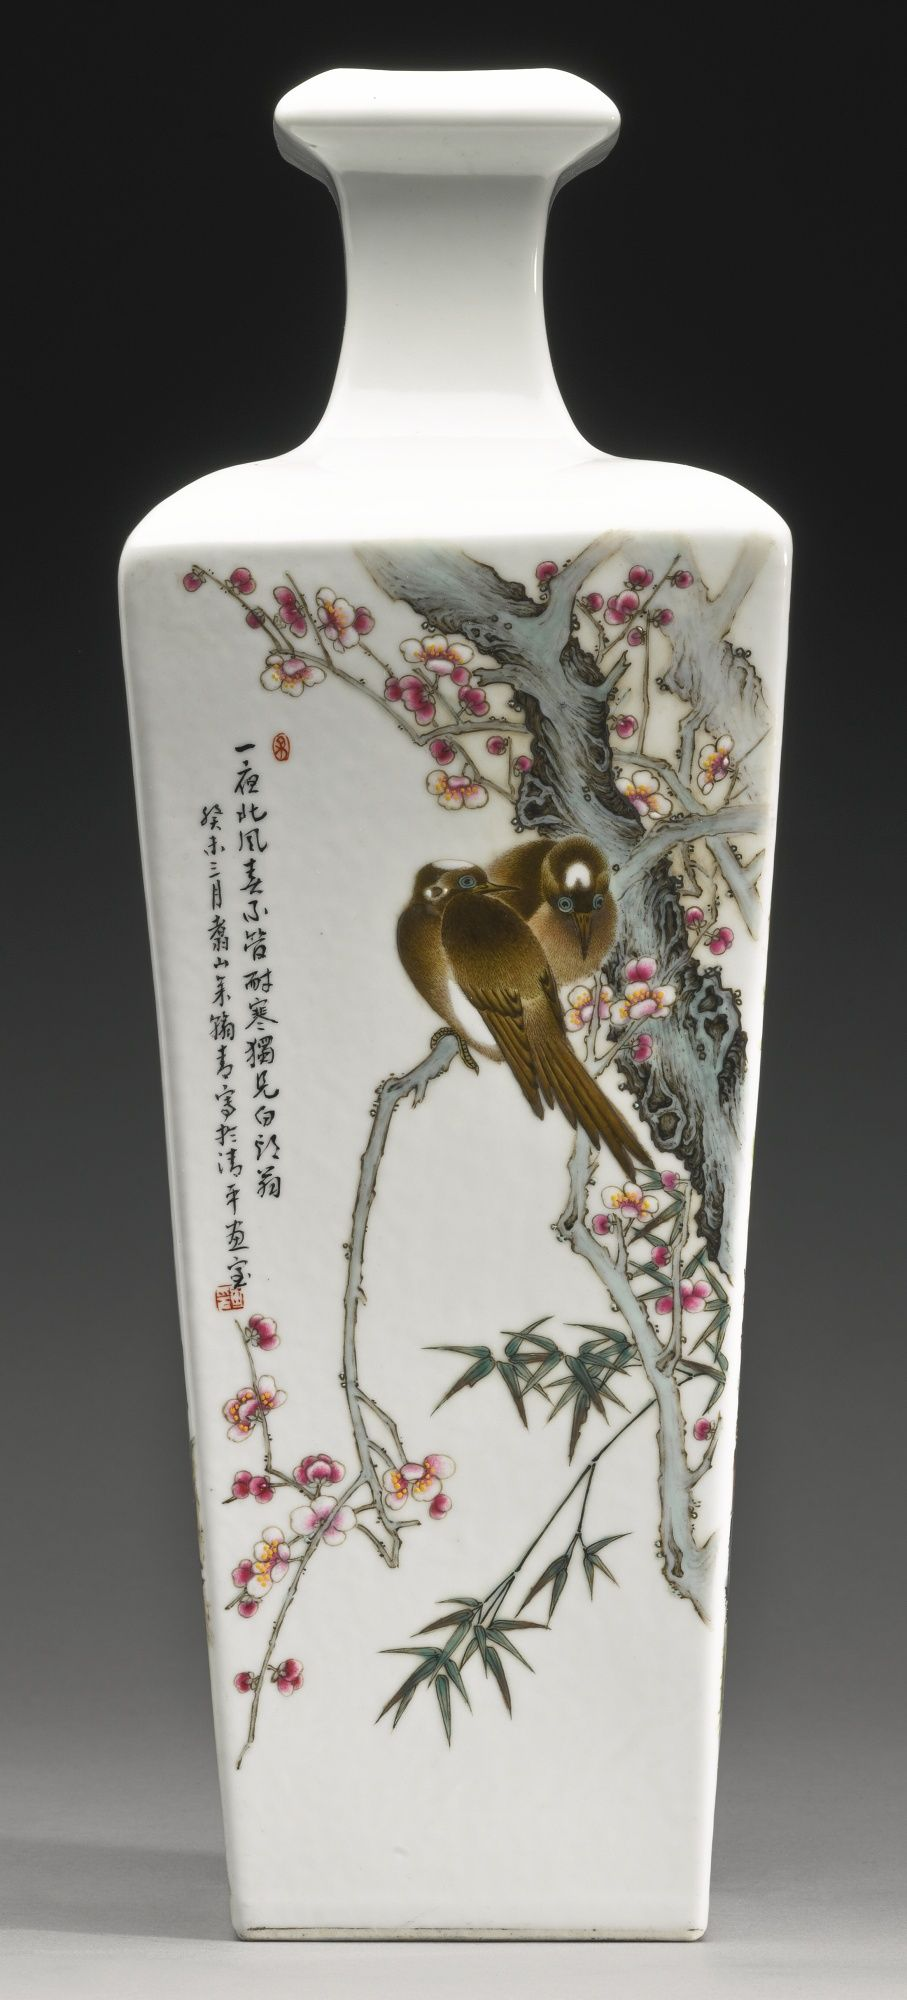 A FAMILLE-ROSE 'BIRD AND FLOWER' VASE DATED TO THE GUIWEI YEAR CORRESPONDING TO 1943, SIGNED YU HANQING (1903-1987) each side brightly enameled with vignettes of birds and flowering plants, two sides with poetic couplets relating to the scene depicted followed by a detailed date and signature, the other sides one with date and signature, the other with just signature, with painted seals reading hua yin (painting seal) and Yu, the countersunk base with one seal reading Hanqing